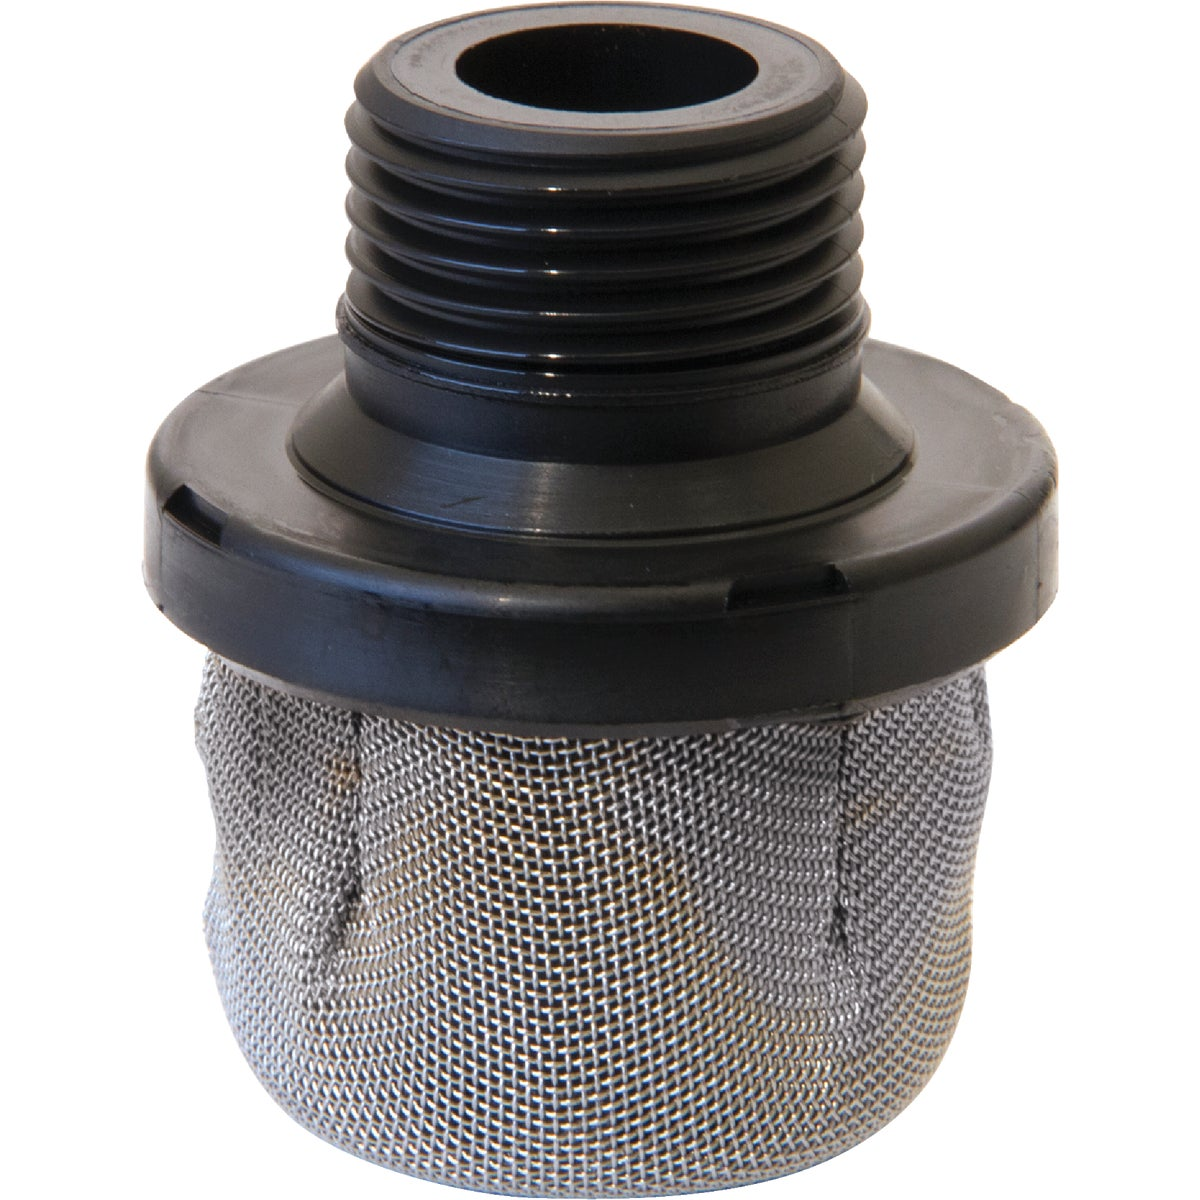 MAGNUM INLET STRAINER - 288716 by Graco Inc